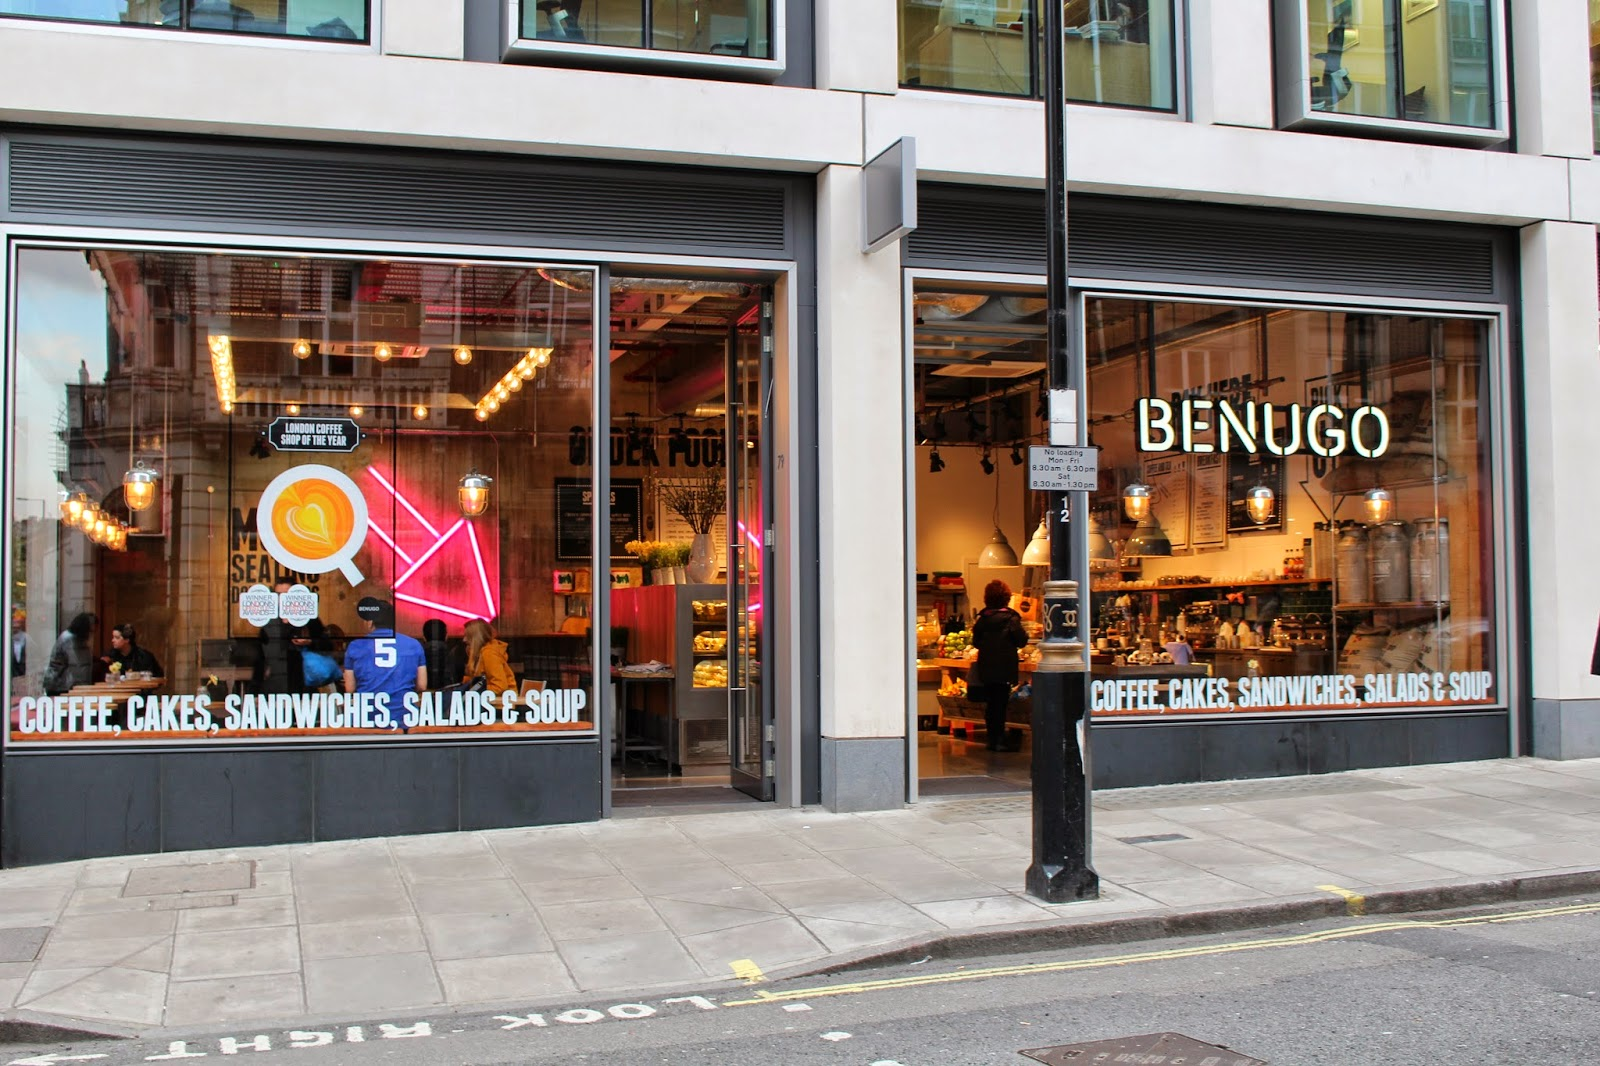 London free wifi study spots Benugo